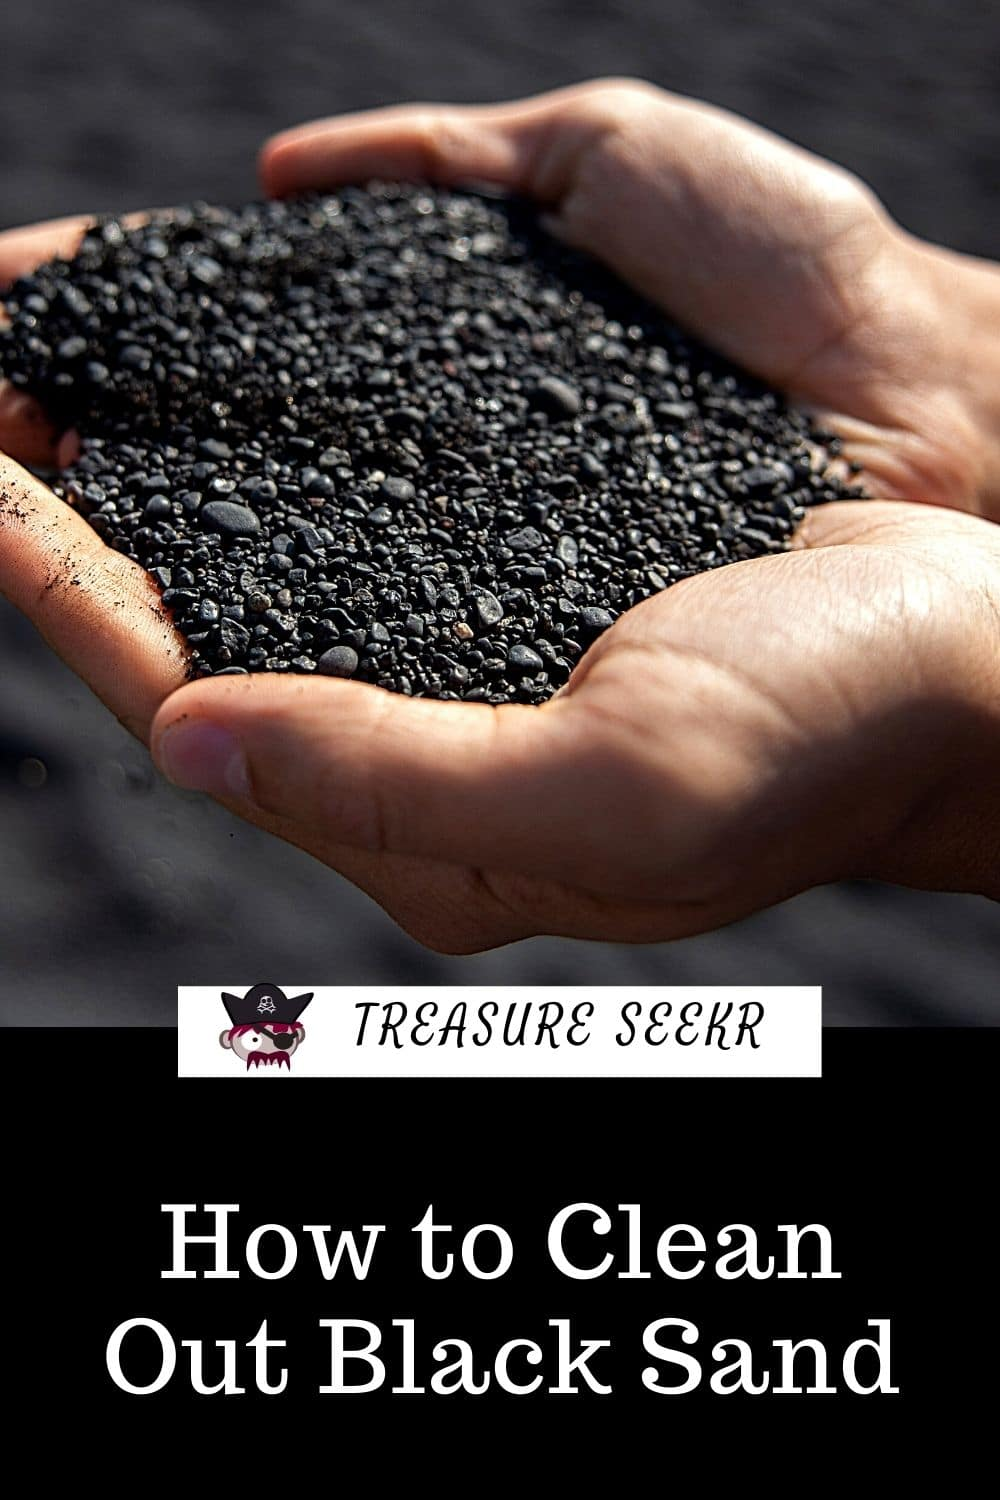 How to Clean Out Black Sand